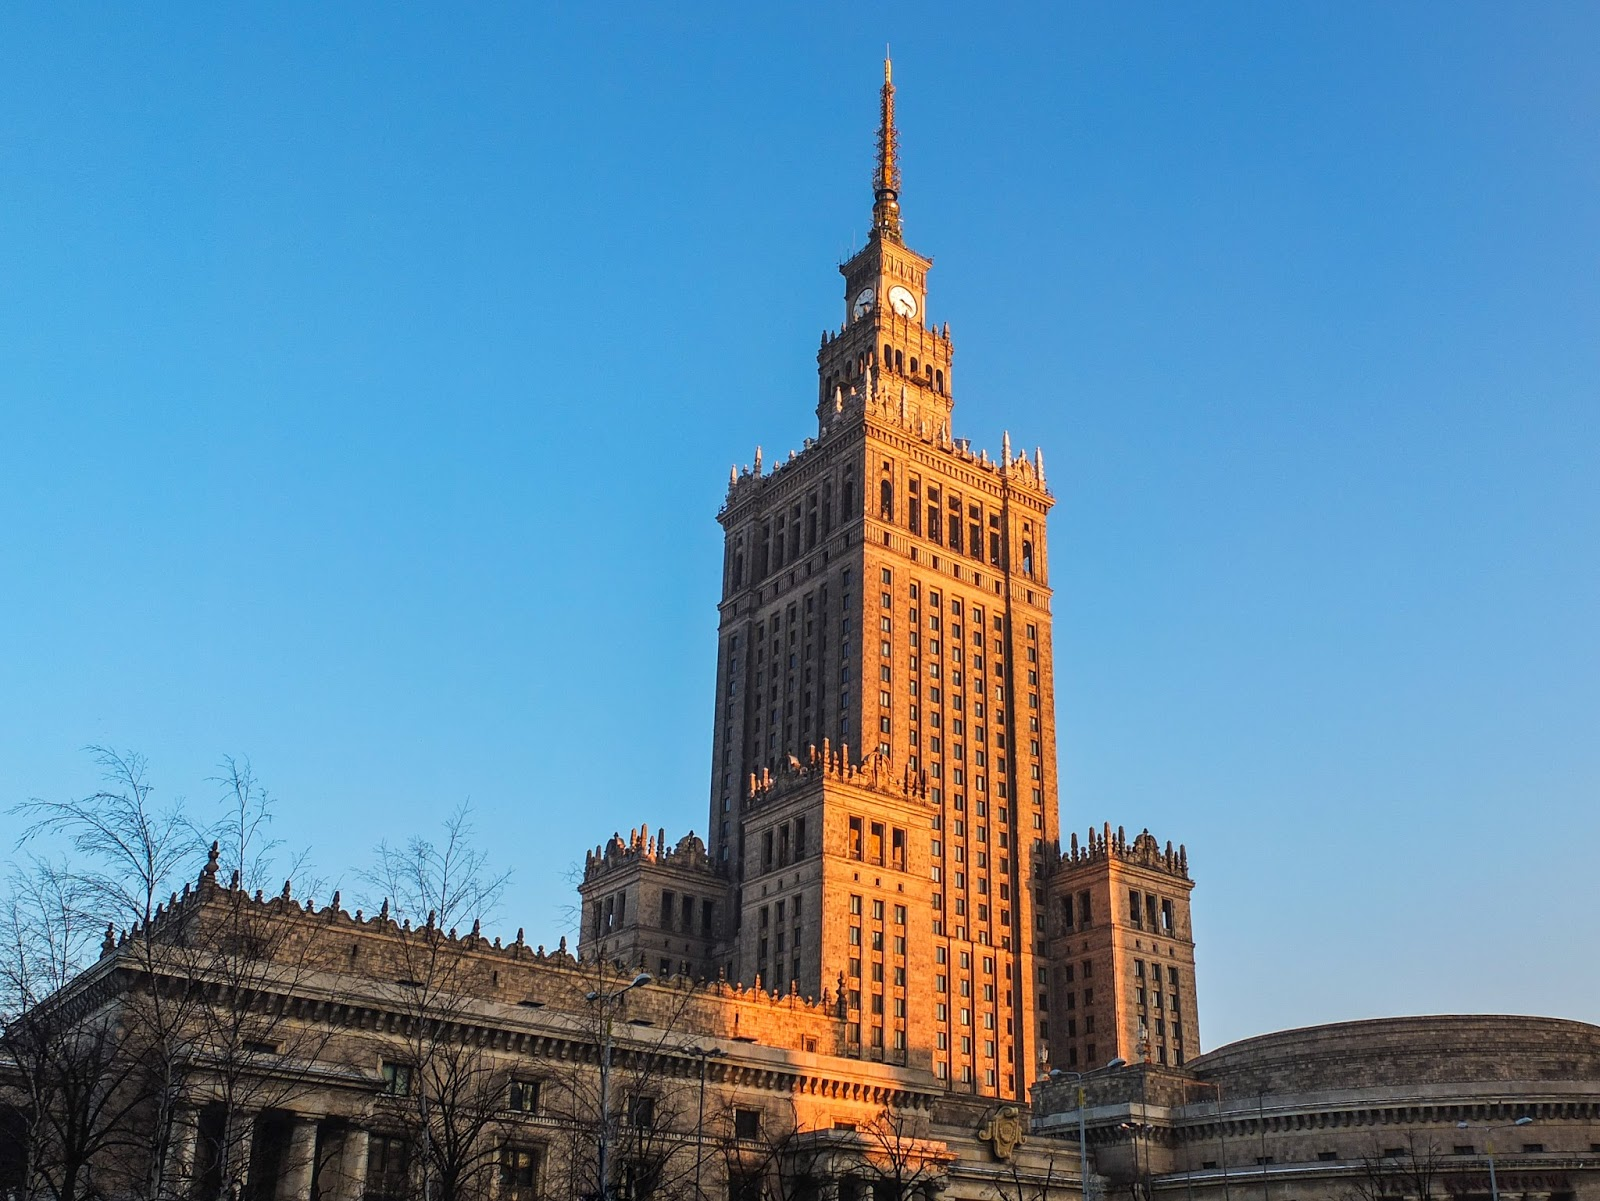 Palace of Culture and Science in Warsaw, Poland at sunset.